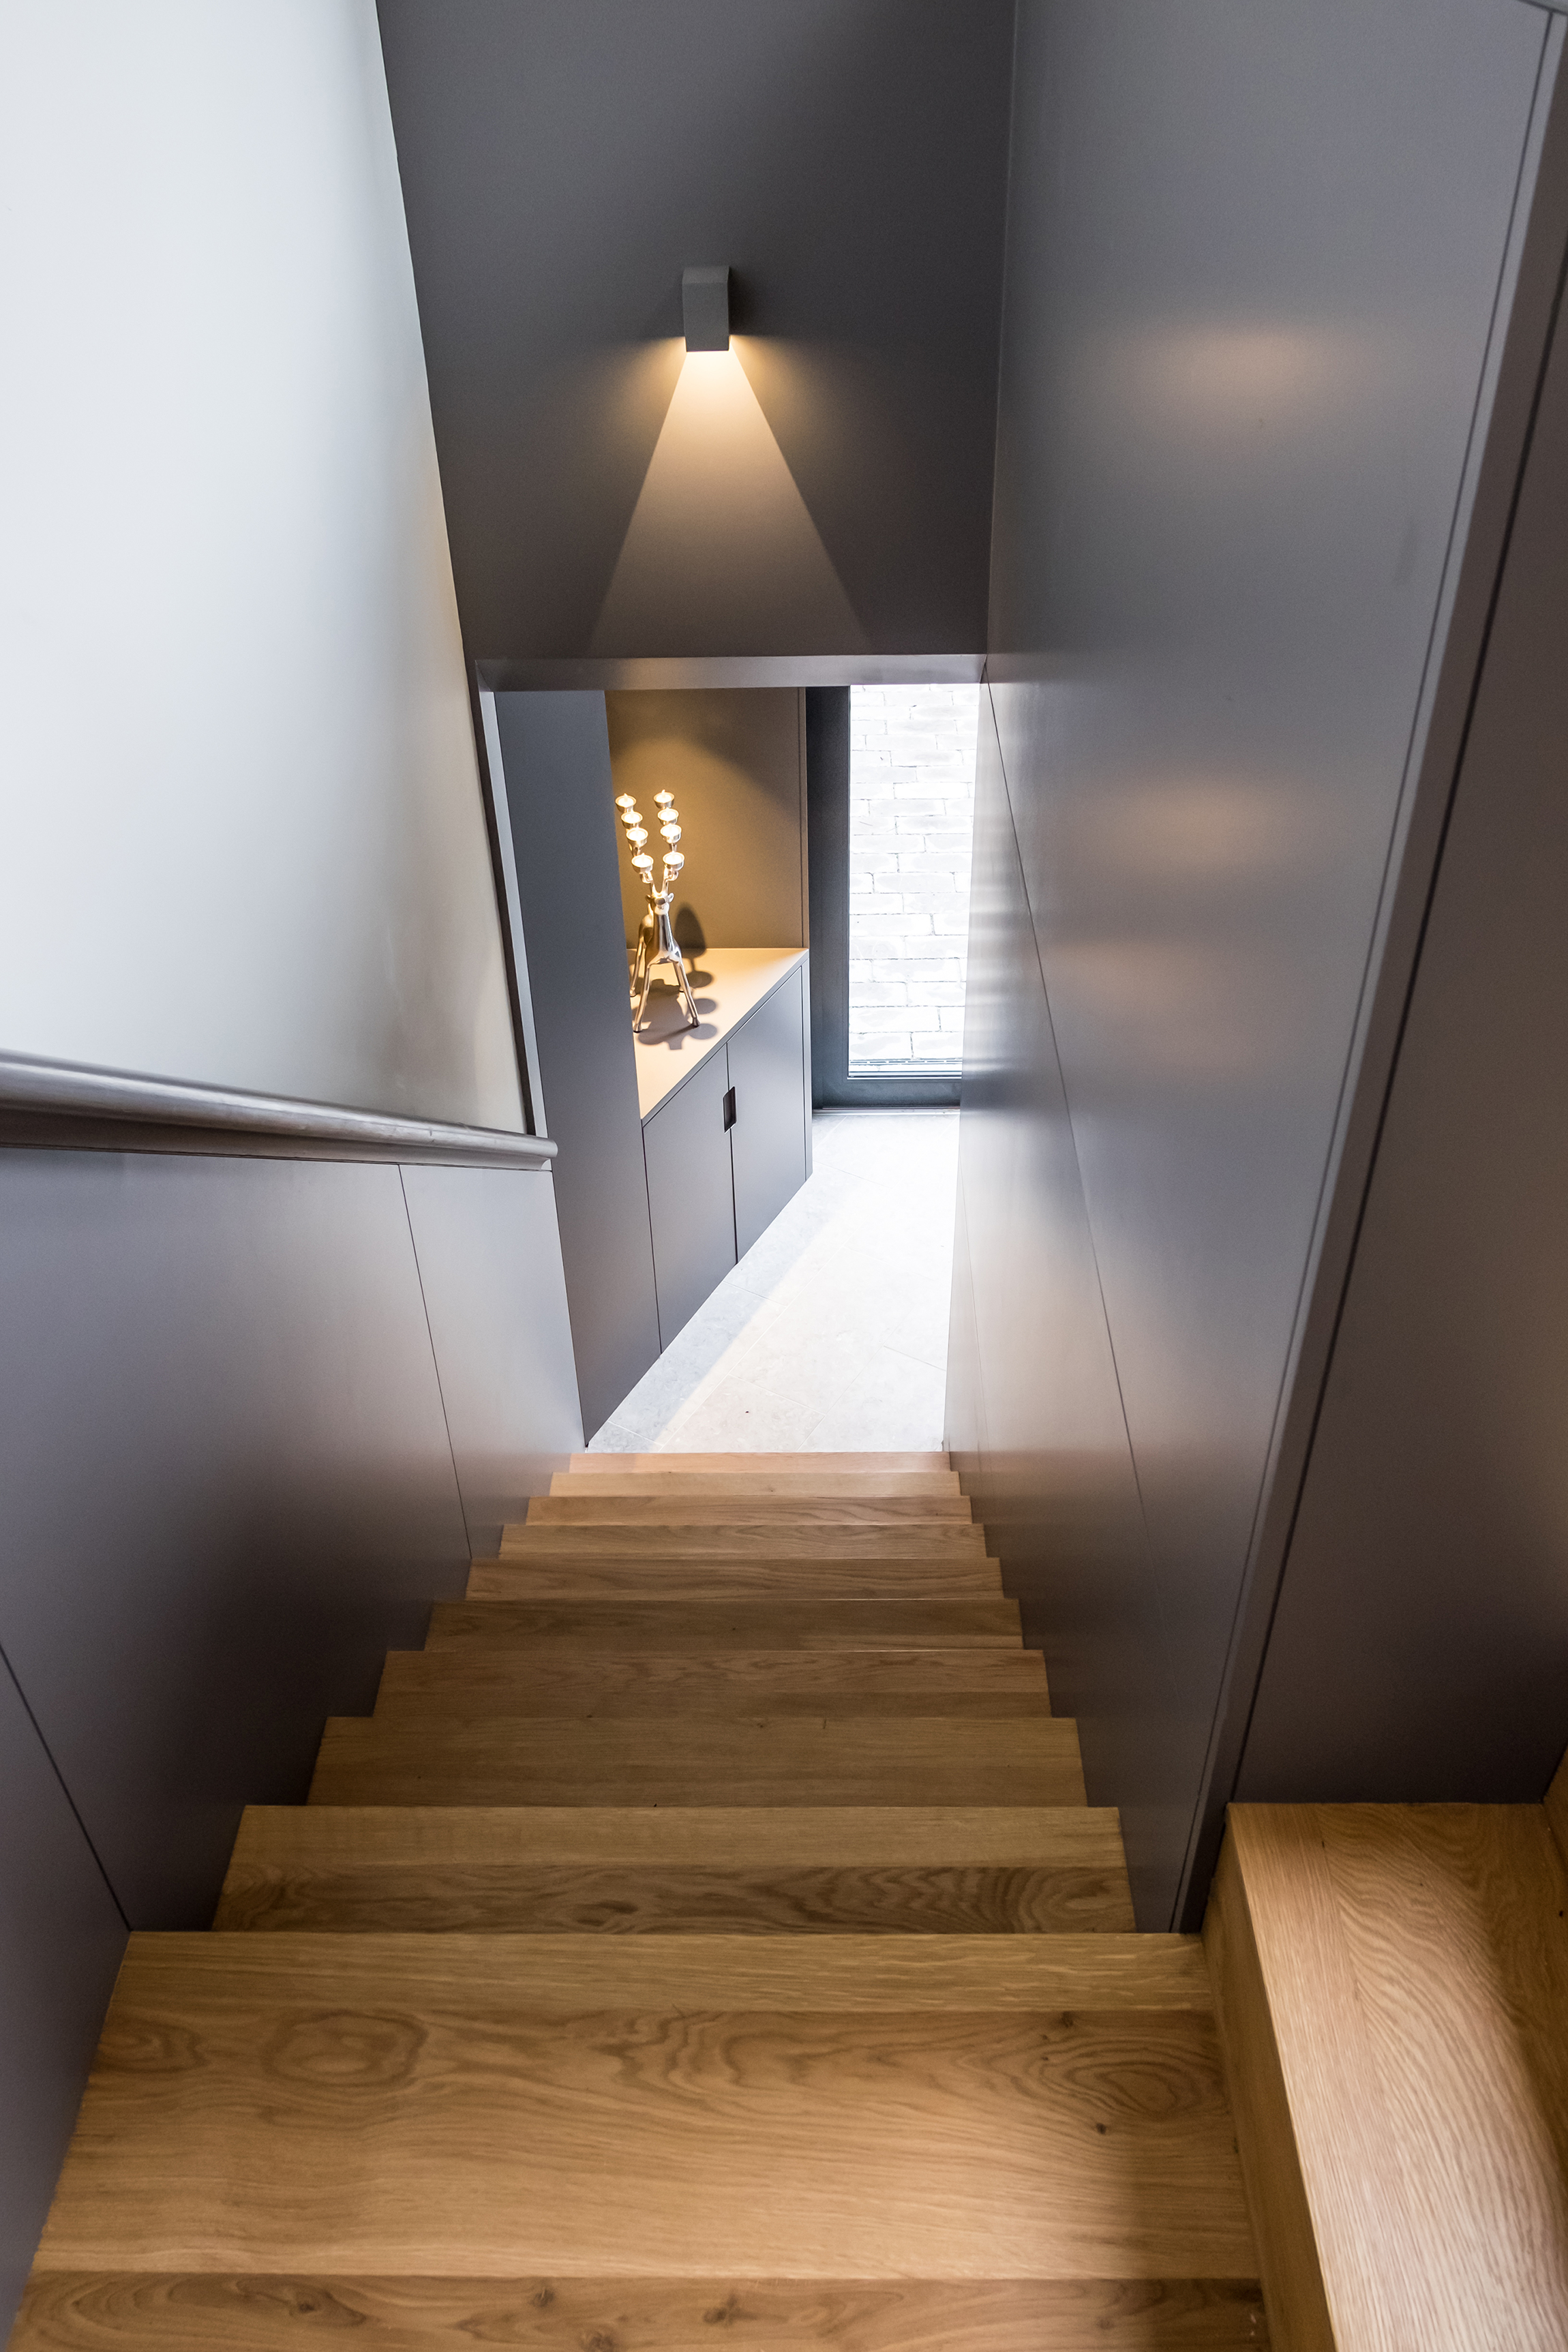 Looking straight down a set of wooden stairs